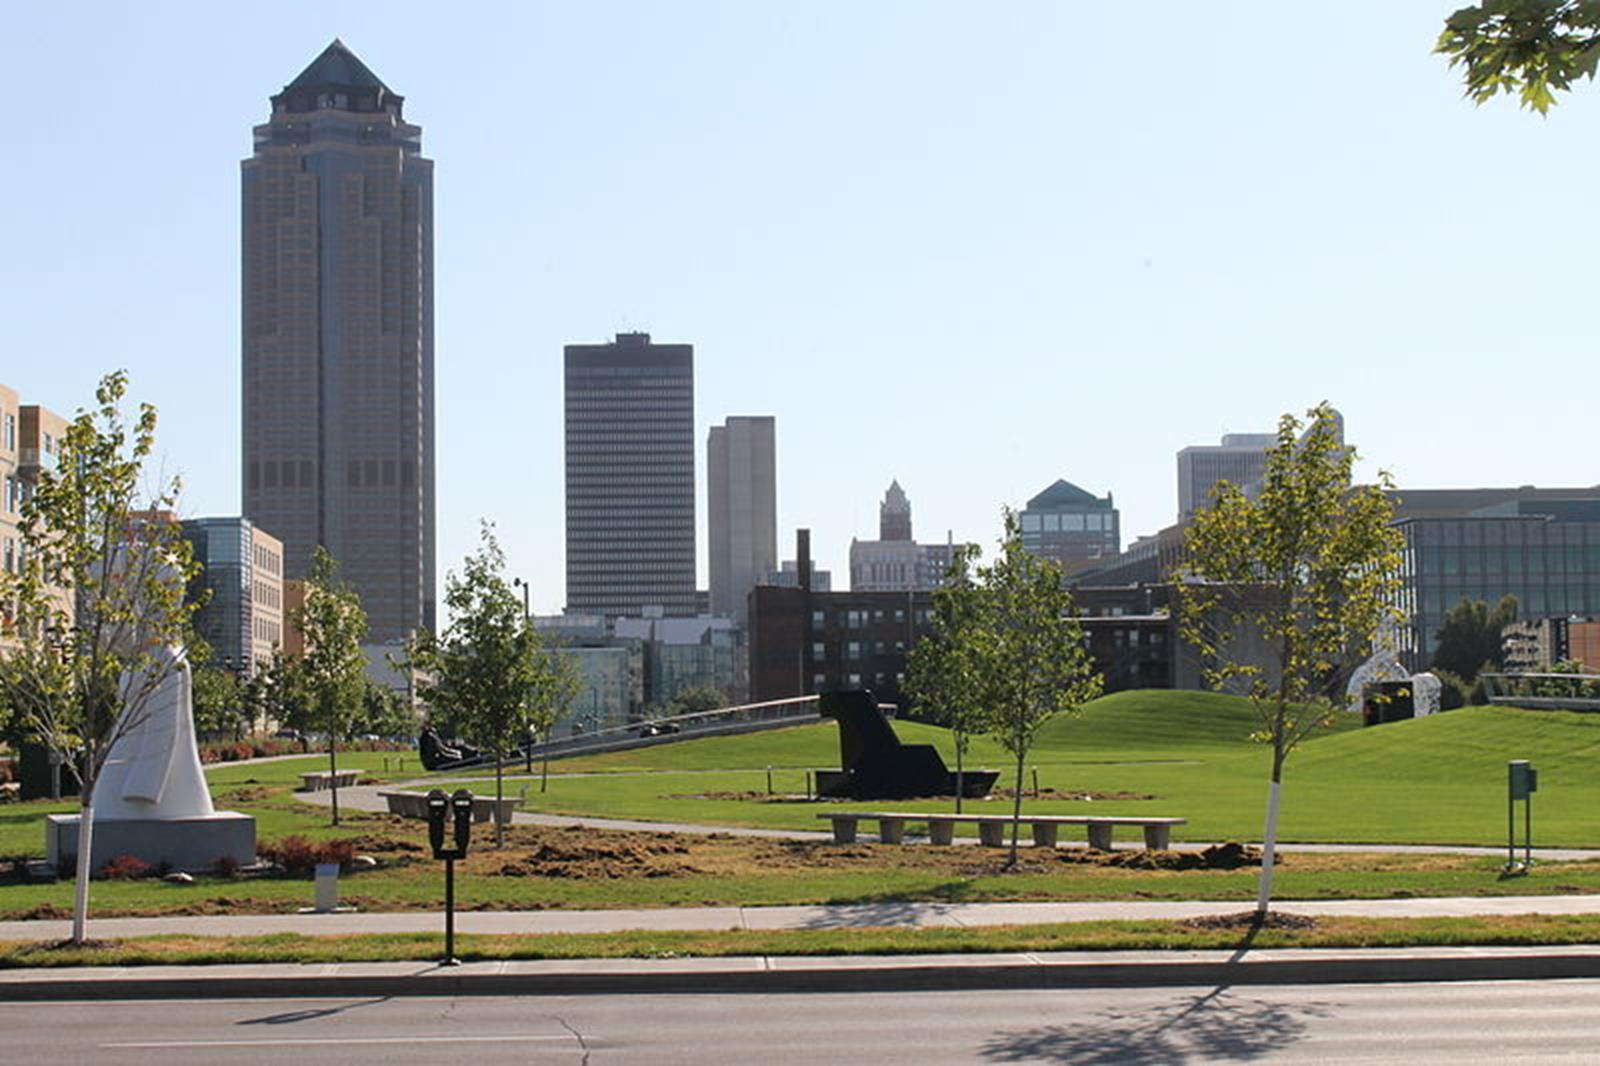 Student travel to the heart of des moines iowa for Iowa largest craft show